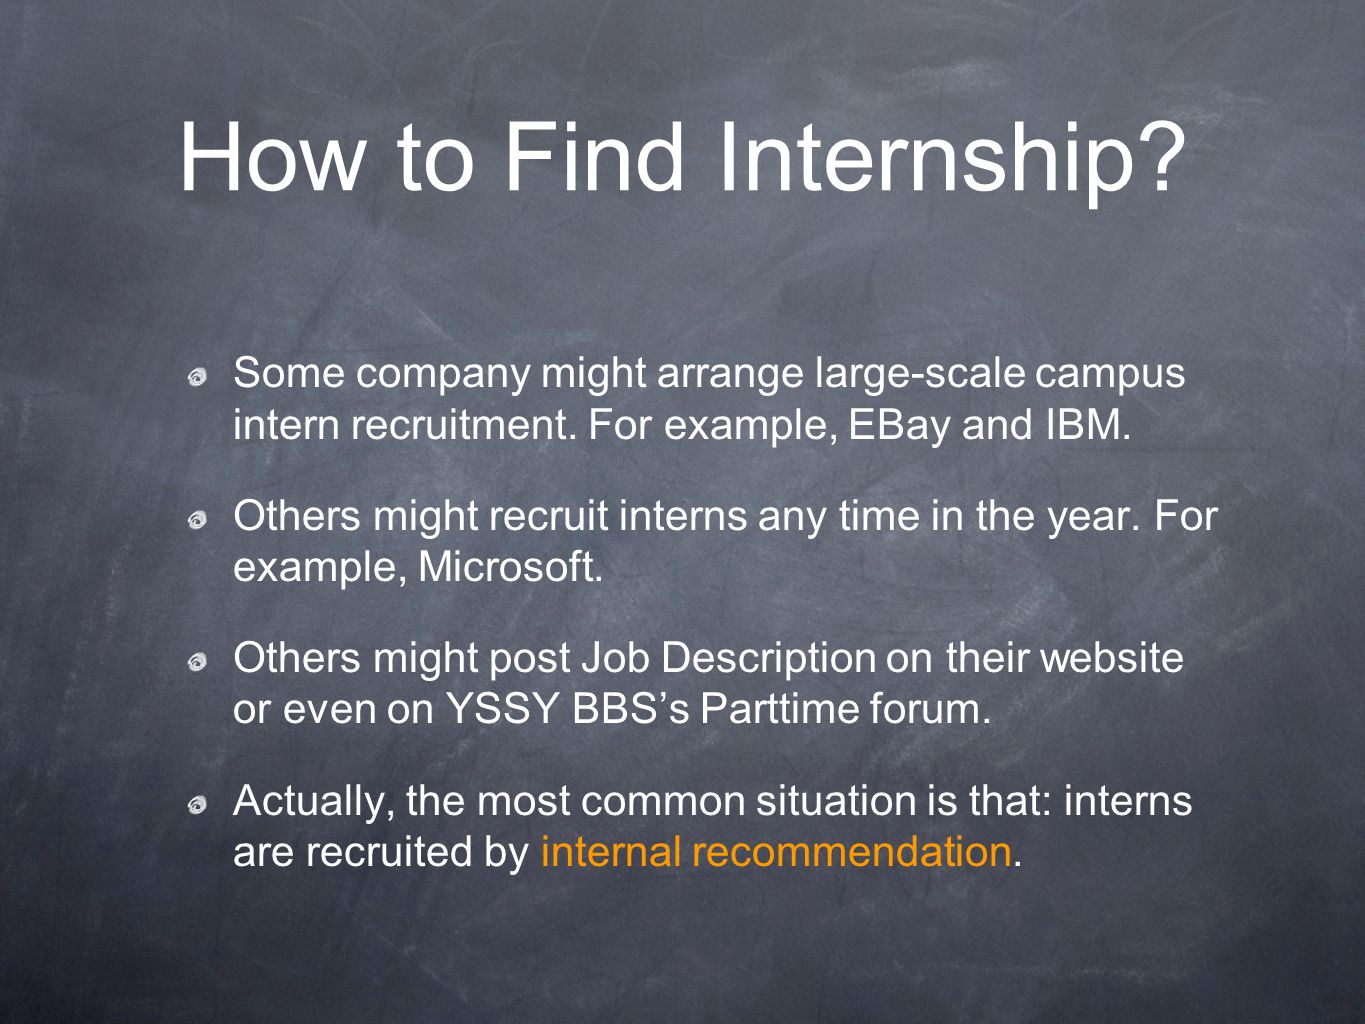 How to Find Internship. Some company might arrange large-scale campus intern recruitment.